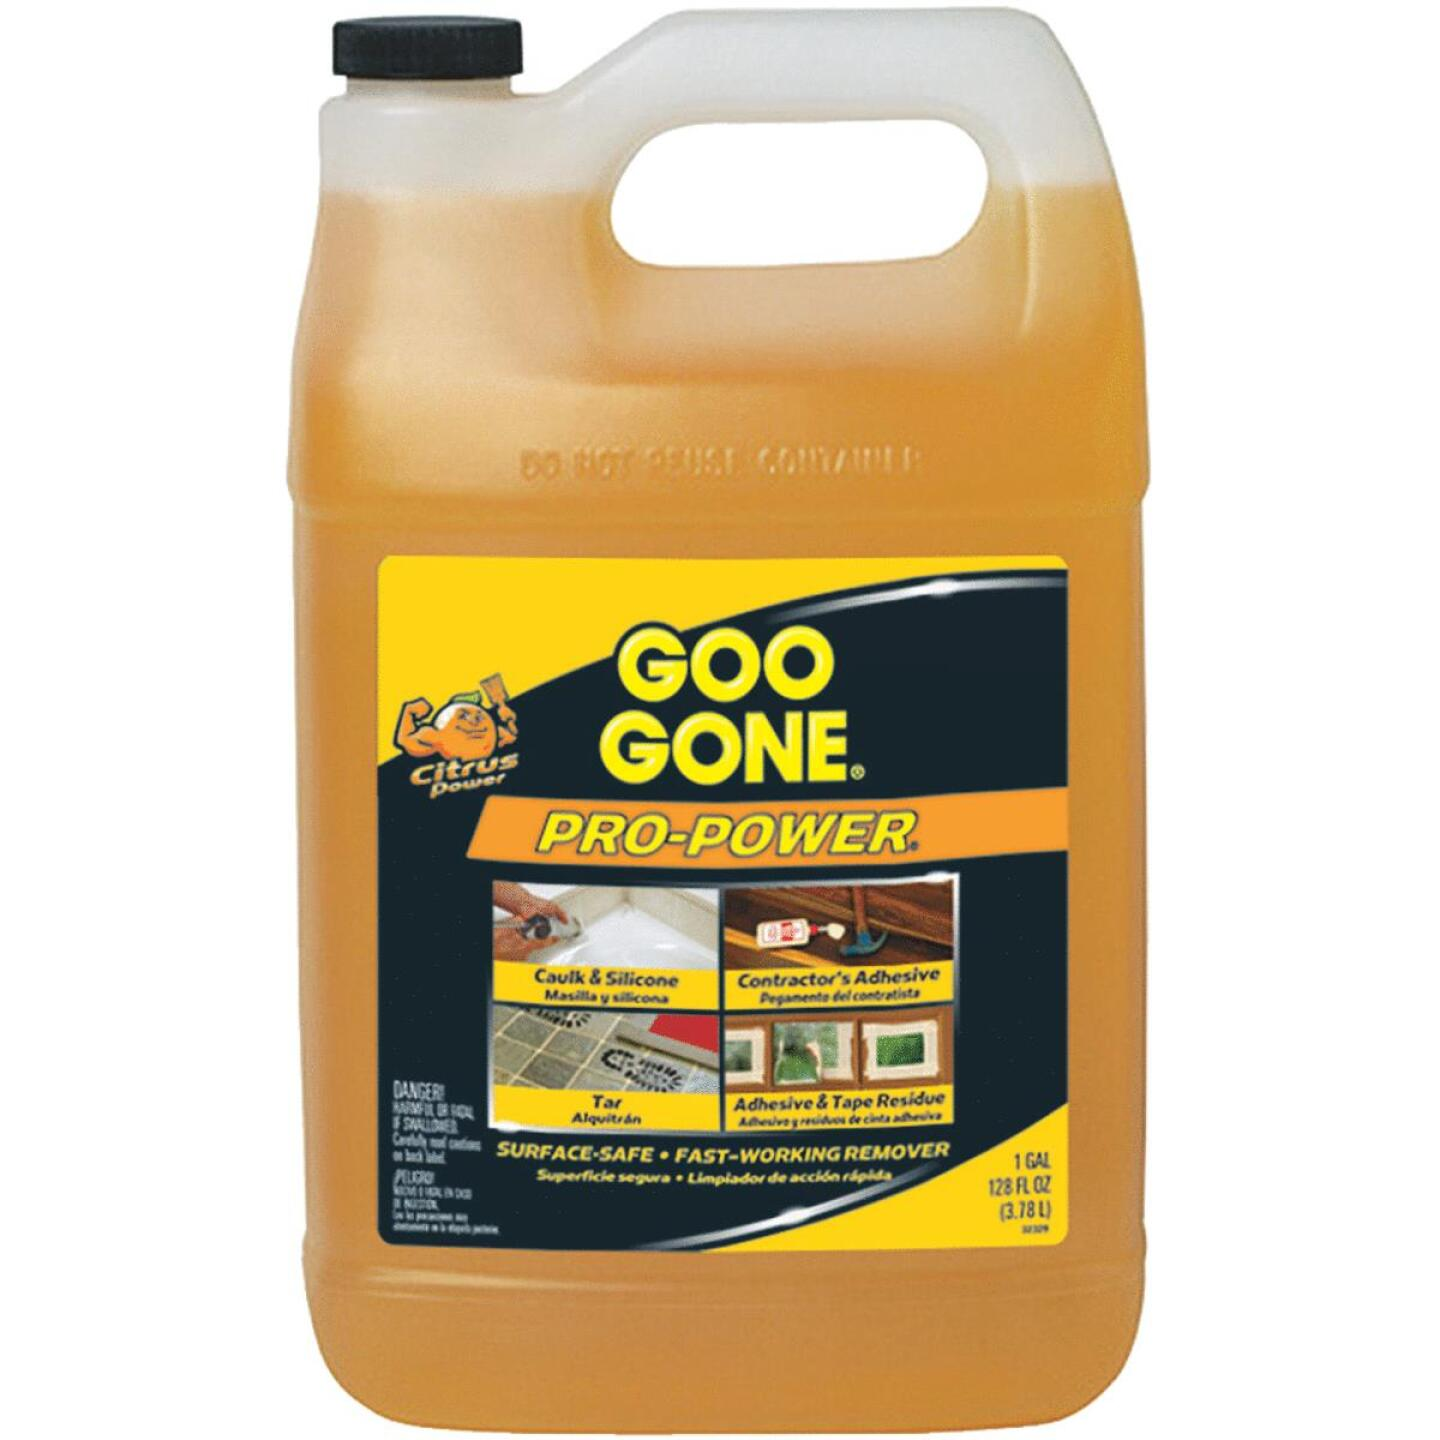 Goo Gone 1 Gal. Pro-Power Adhesive Remover Image 353